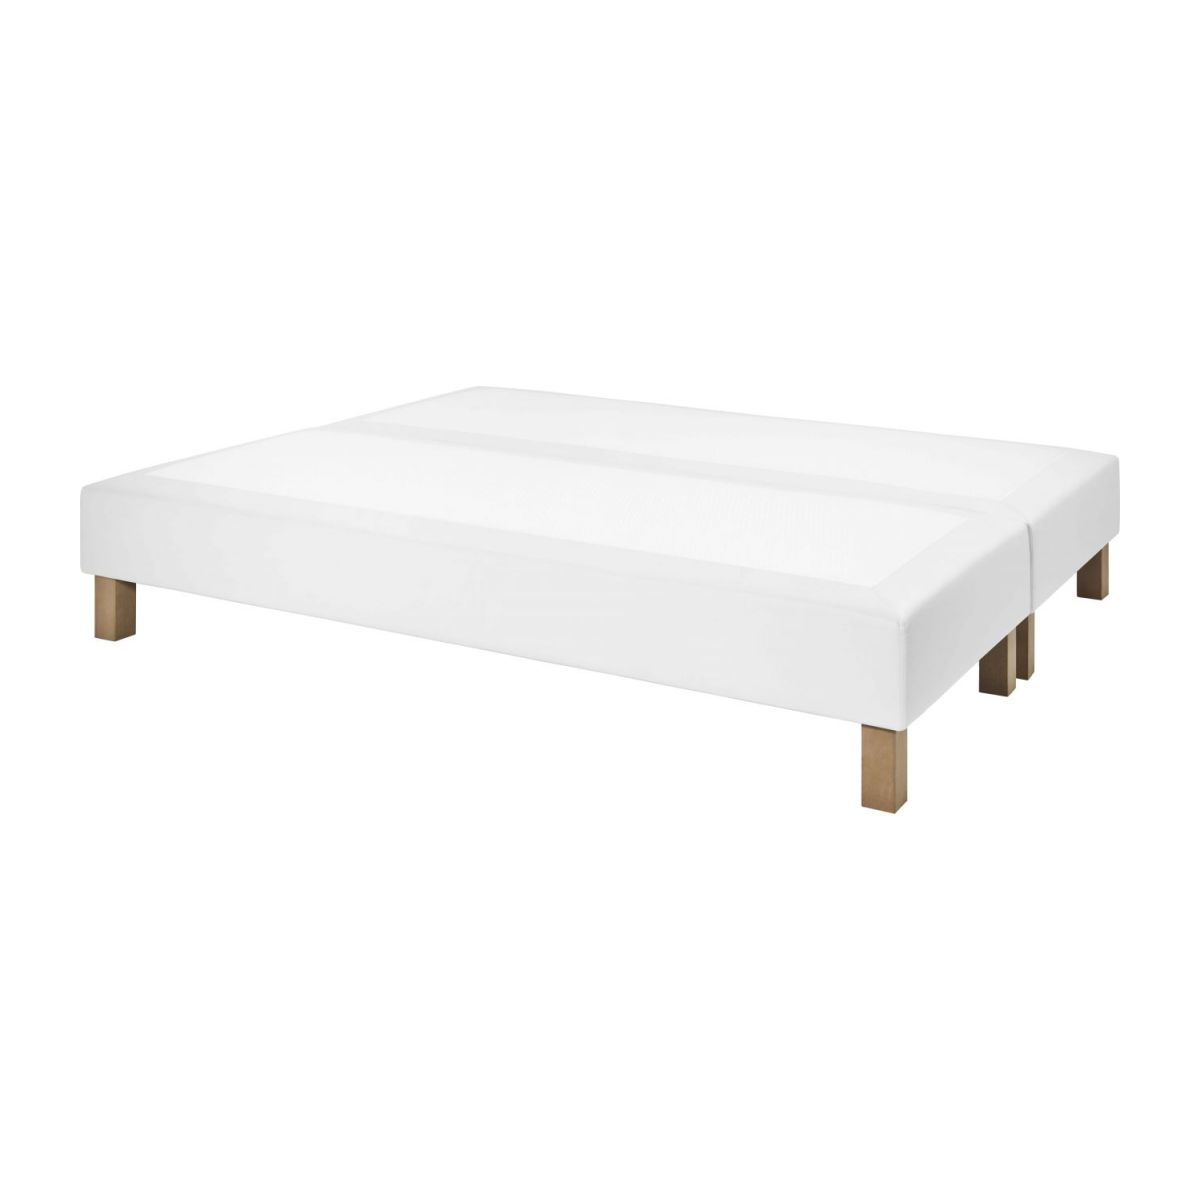 Slatted divan 2x80x200cm in imitation leather, white n°1